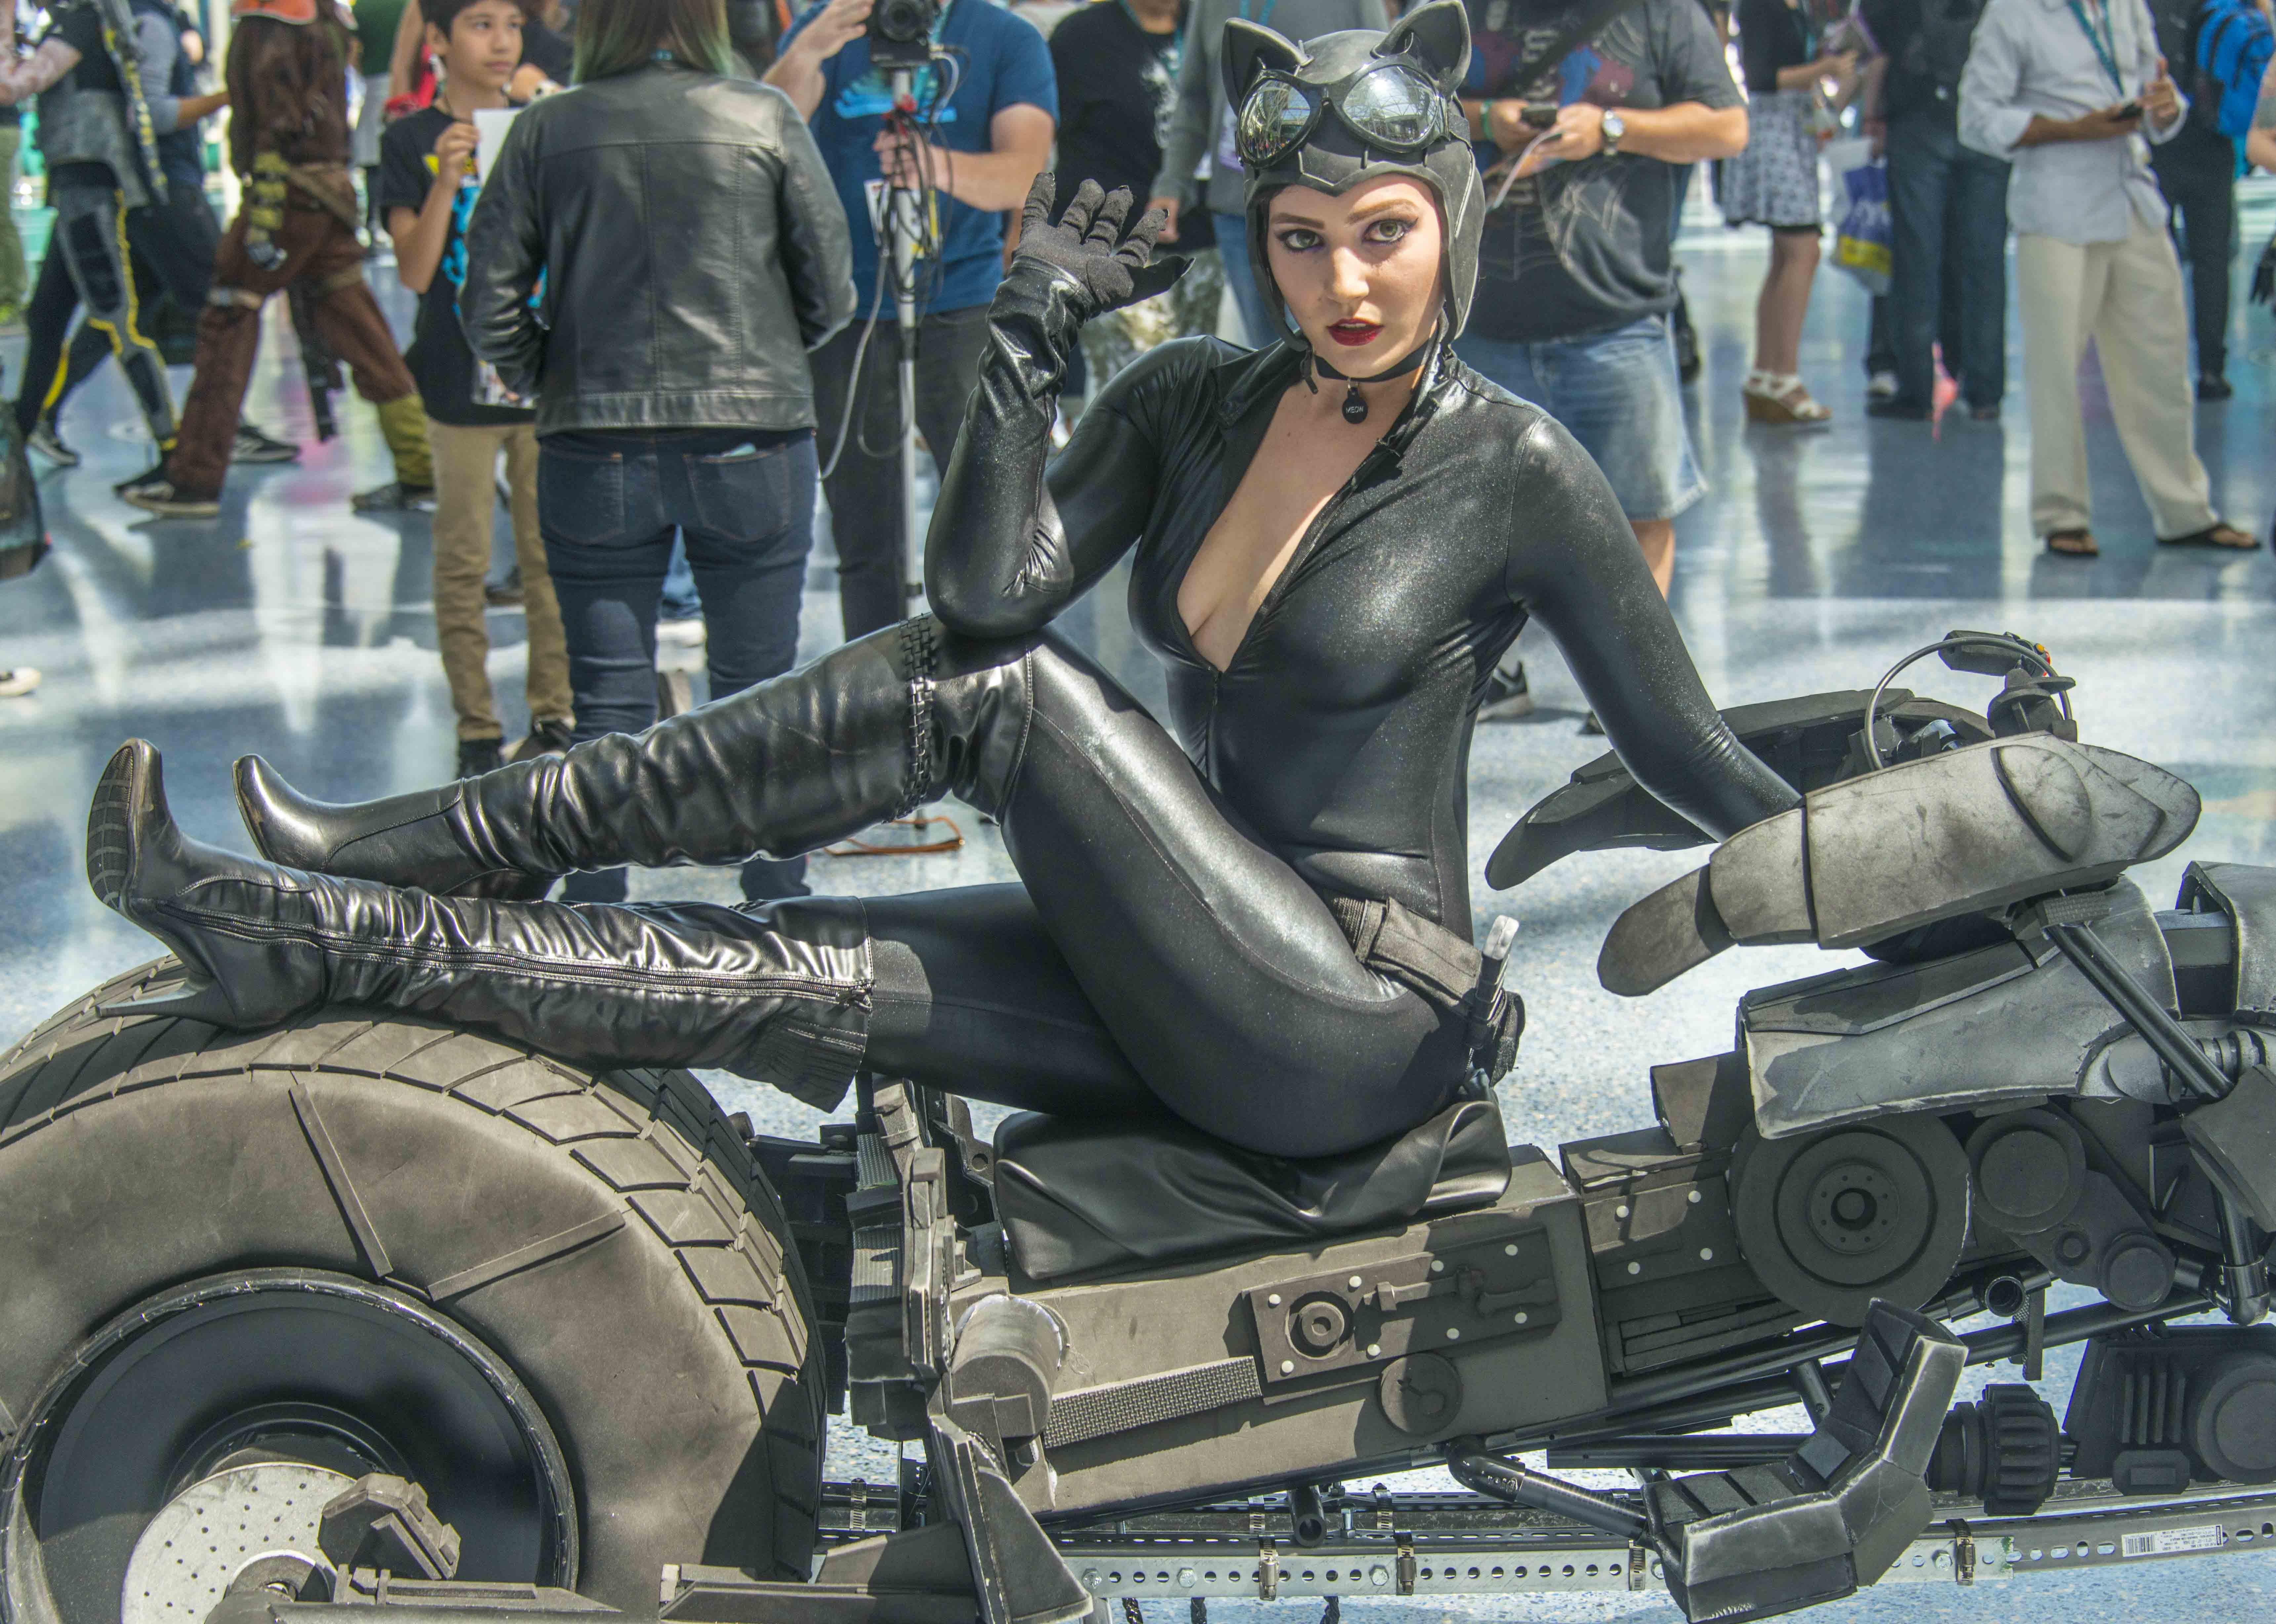 Catwoman astride batman's motorcycle. — Photo by Lawrence Sherwin ©